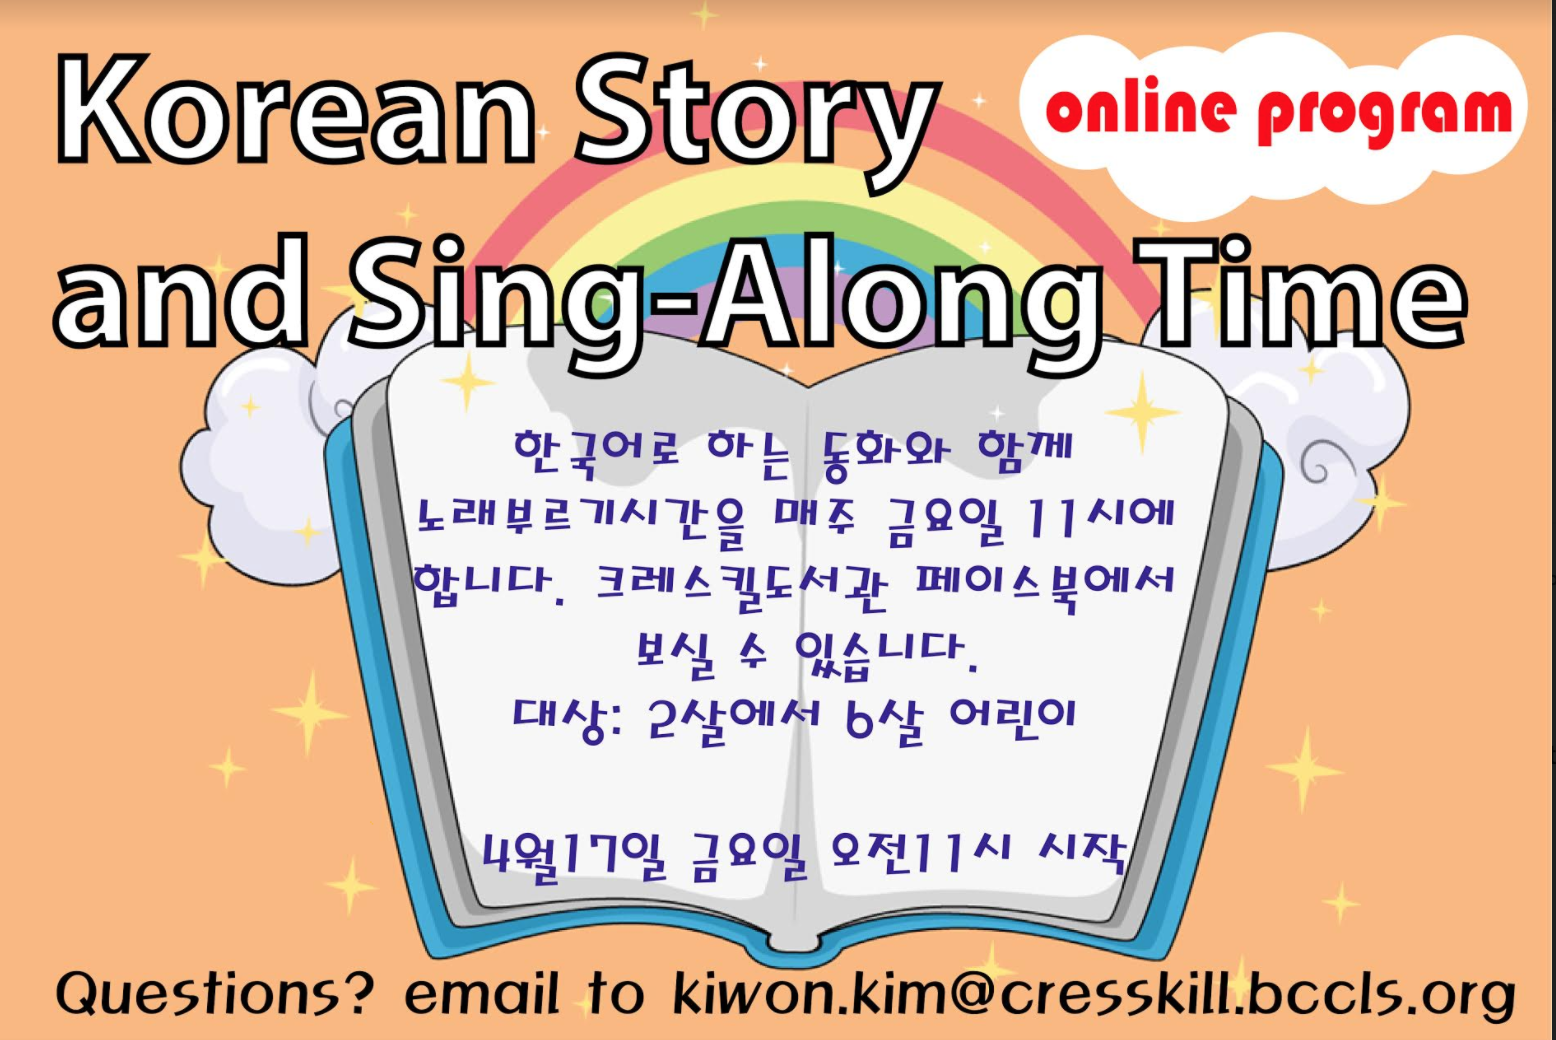 Korean Story and Sing Along Time